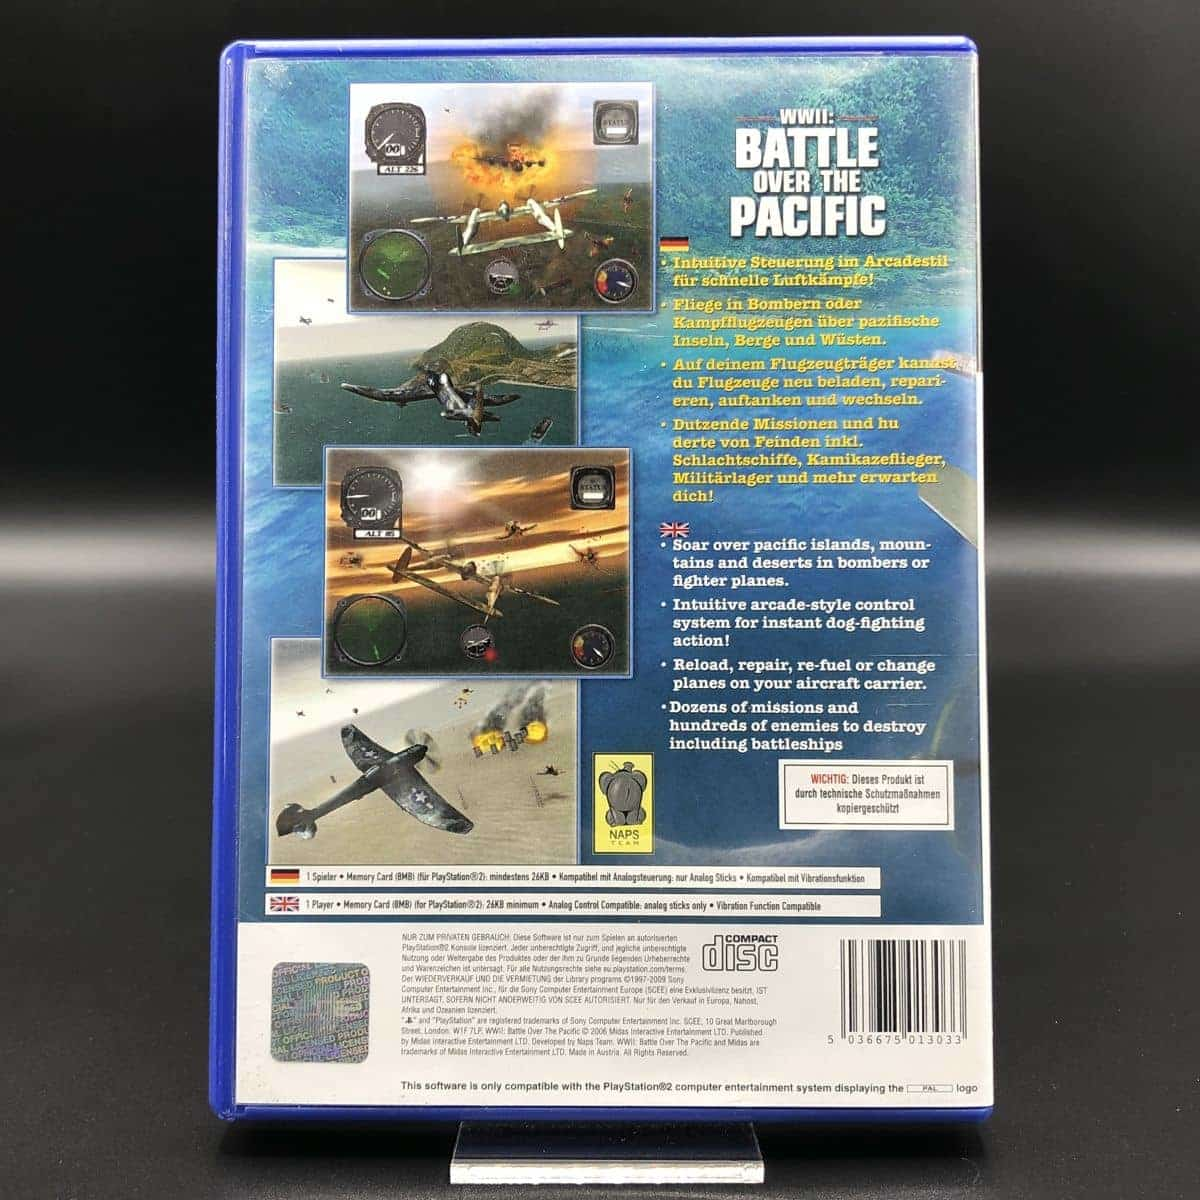 PS2 WWII: Battle Over The Pacific (Komplett) (Sehr gut) Sony PlayStation 2